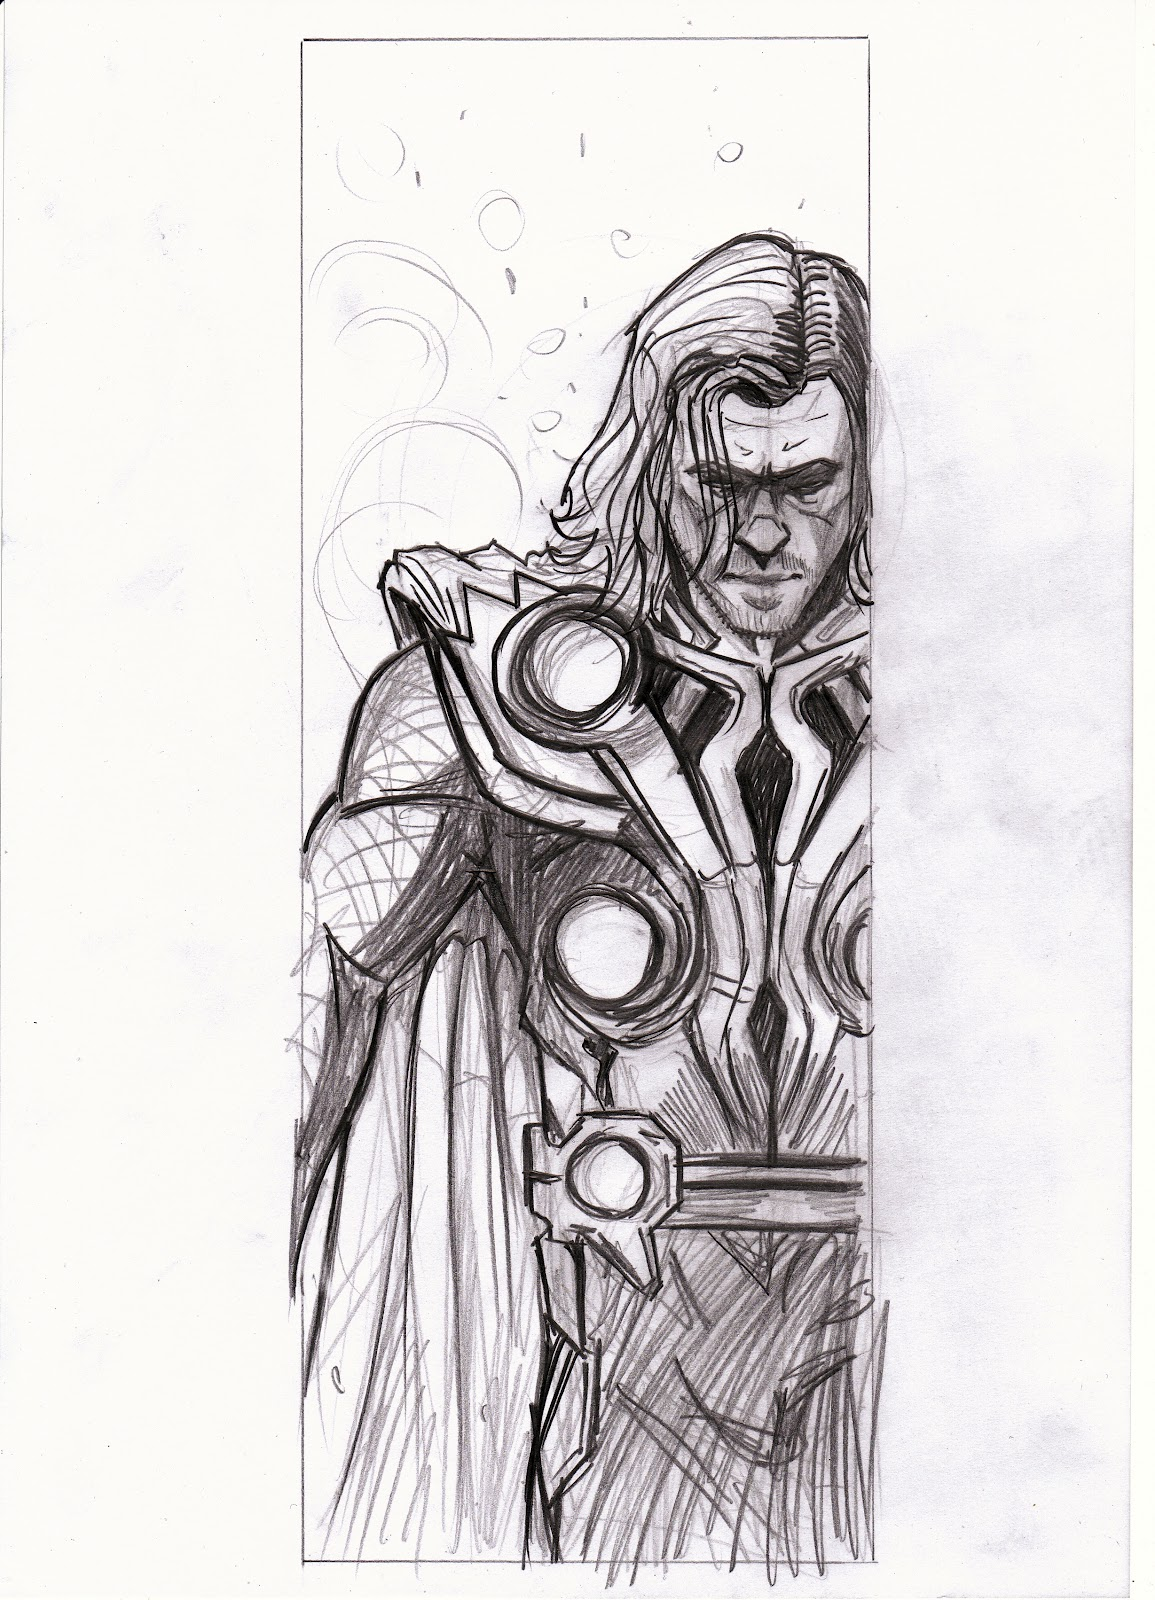 Matt Haworth Waste Of Paint Loki And Thor Sketch To Colour!